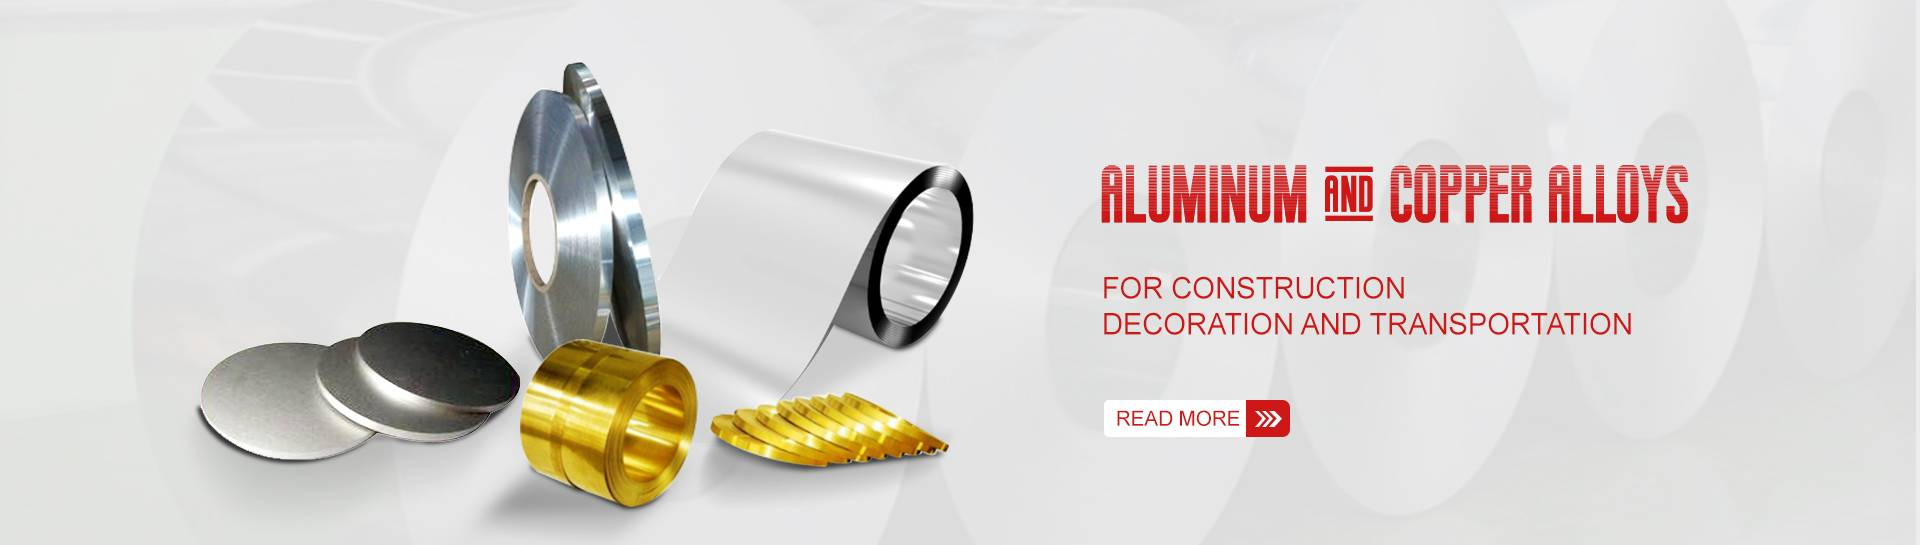 ALUMINUM & COPPER ALLOYS